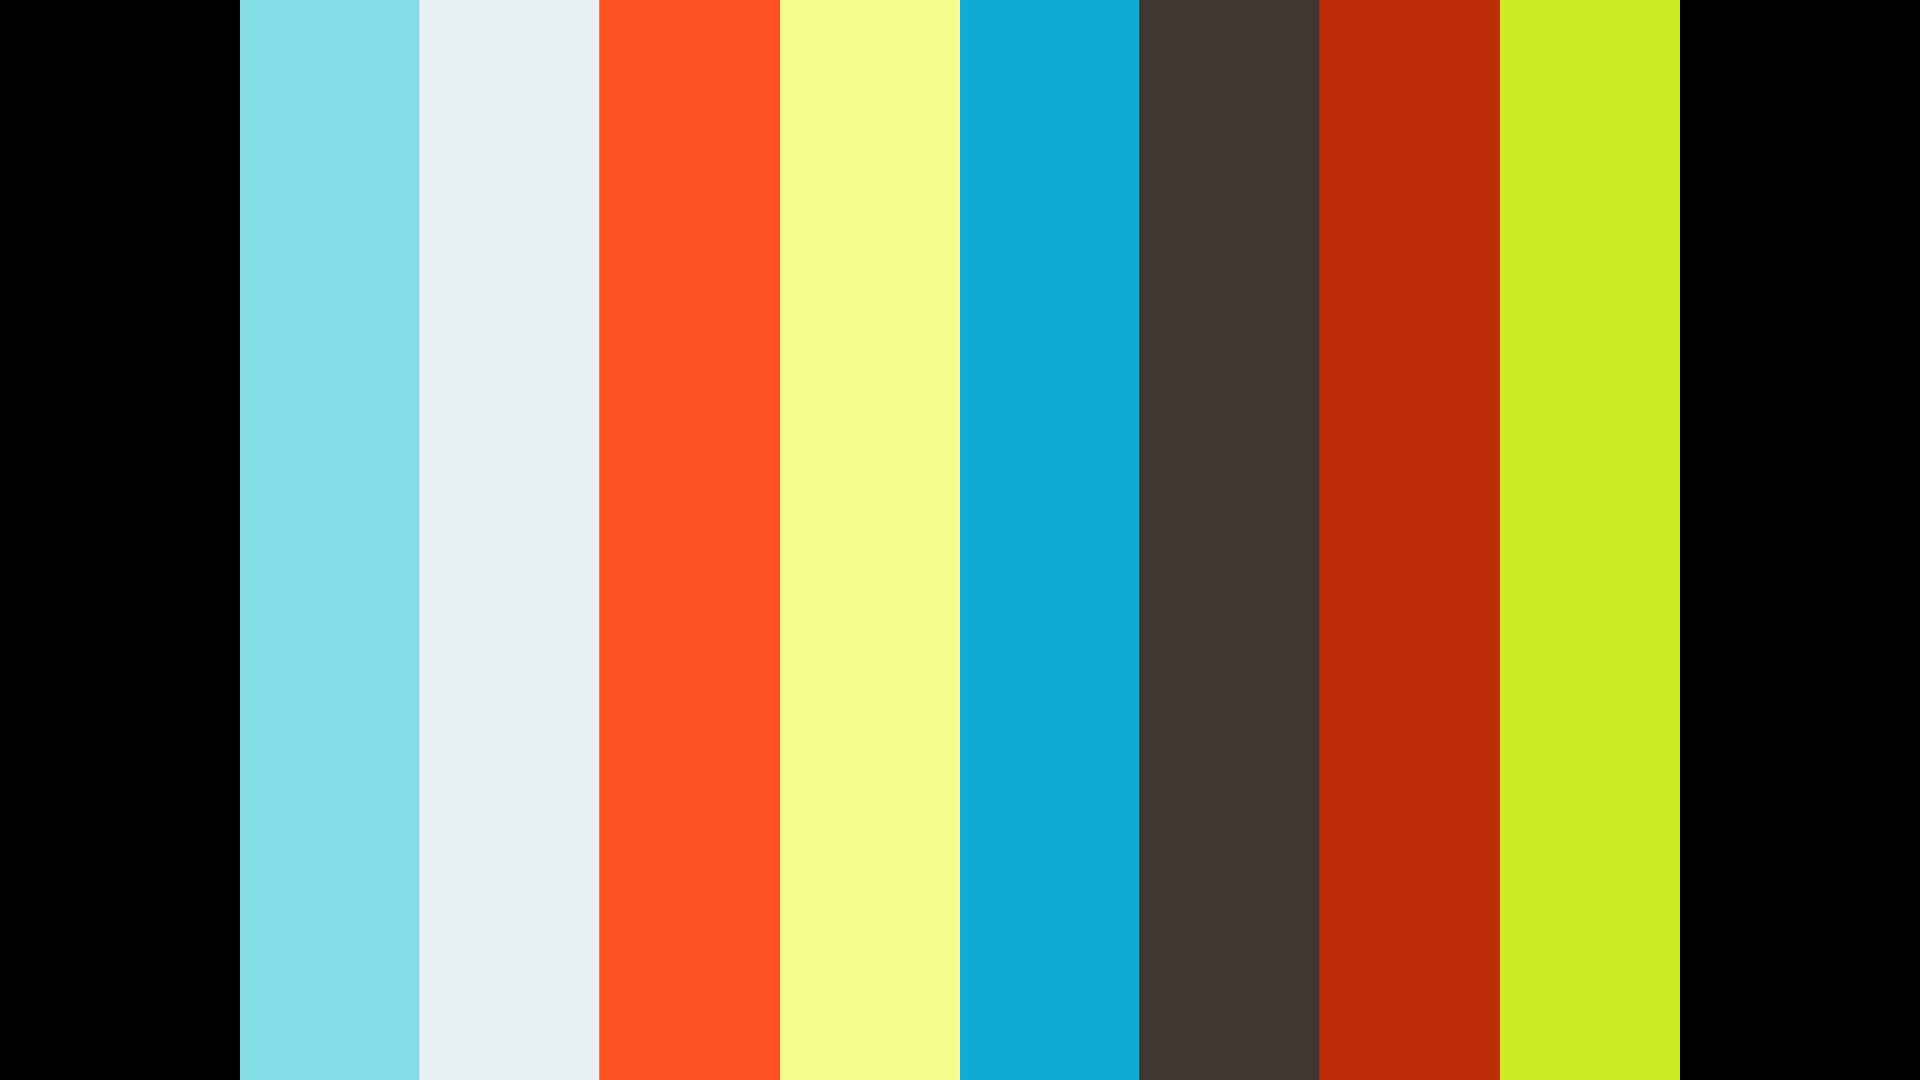 Samson (8A), Burbage South, Peak District